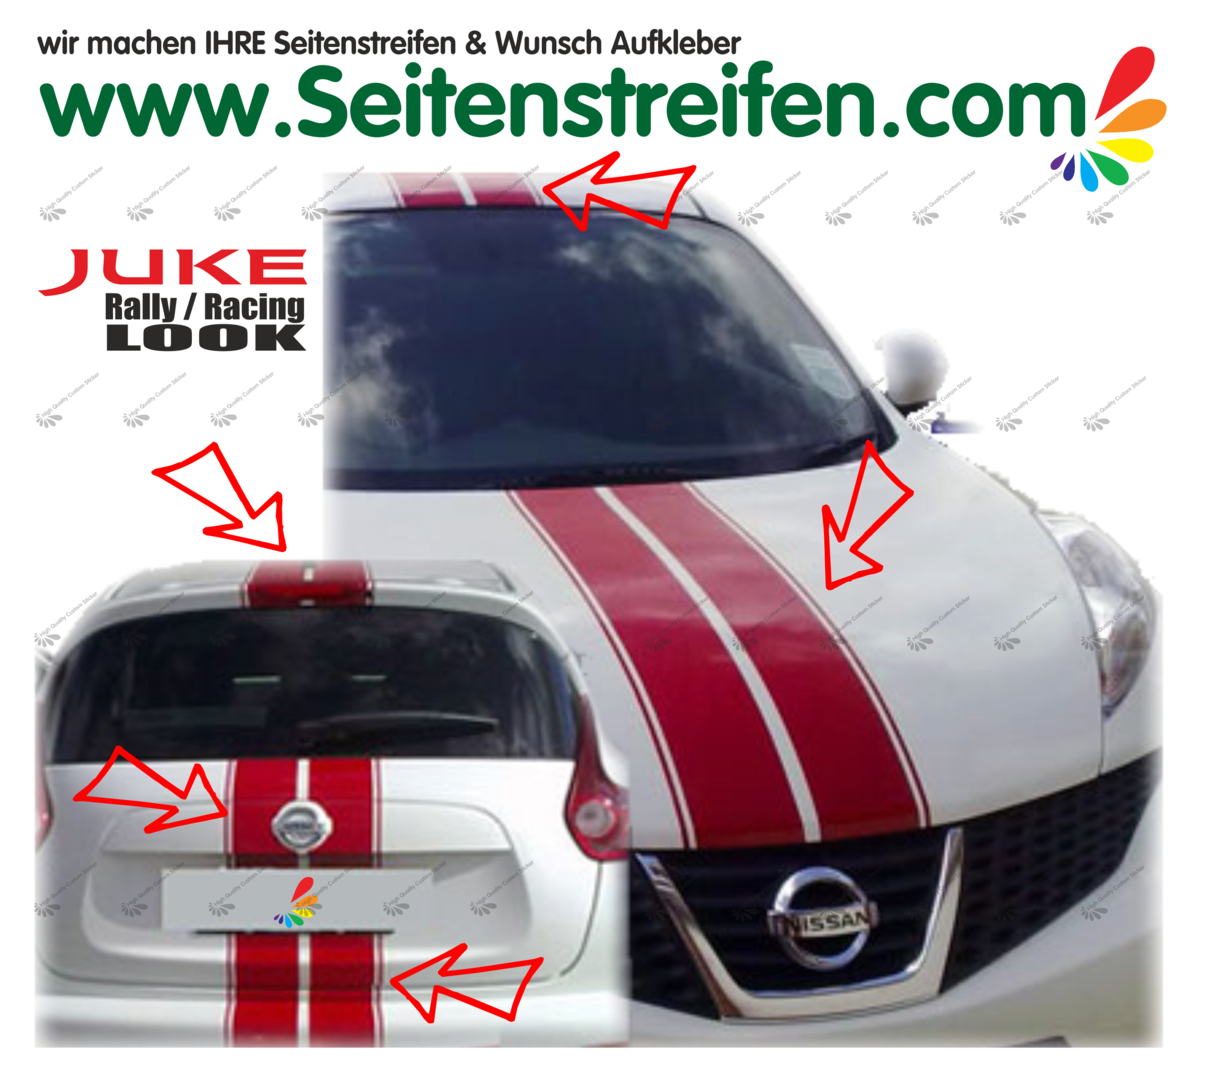 Nissan Juke Nismo - Viper Rally - Graphics Decals Sticker Kit - N° 1536